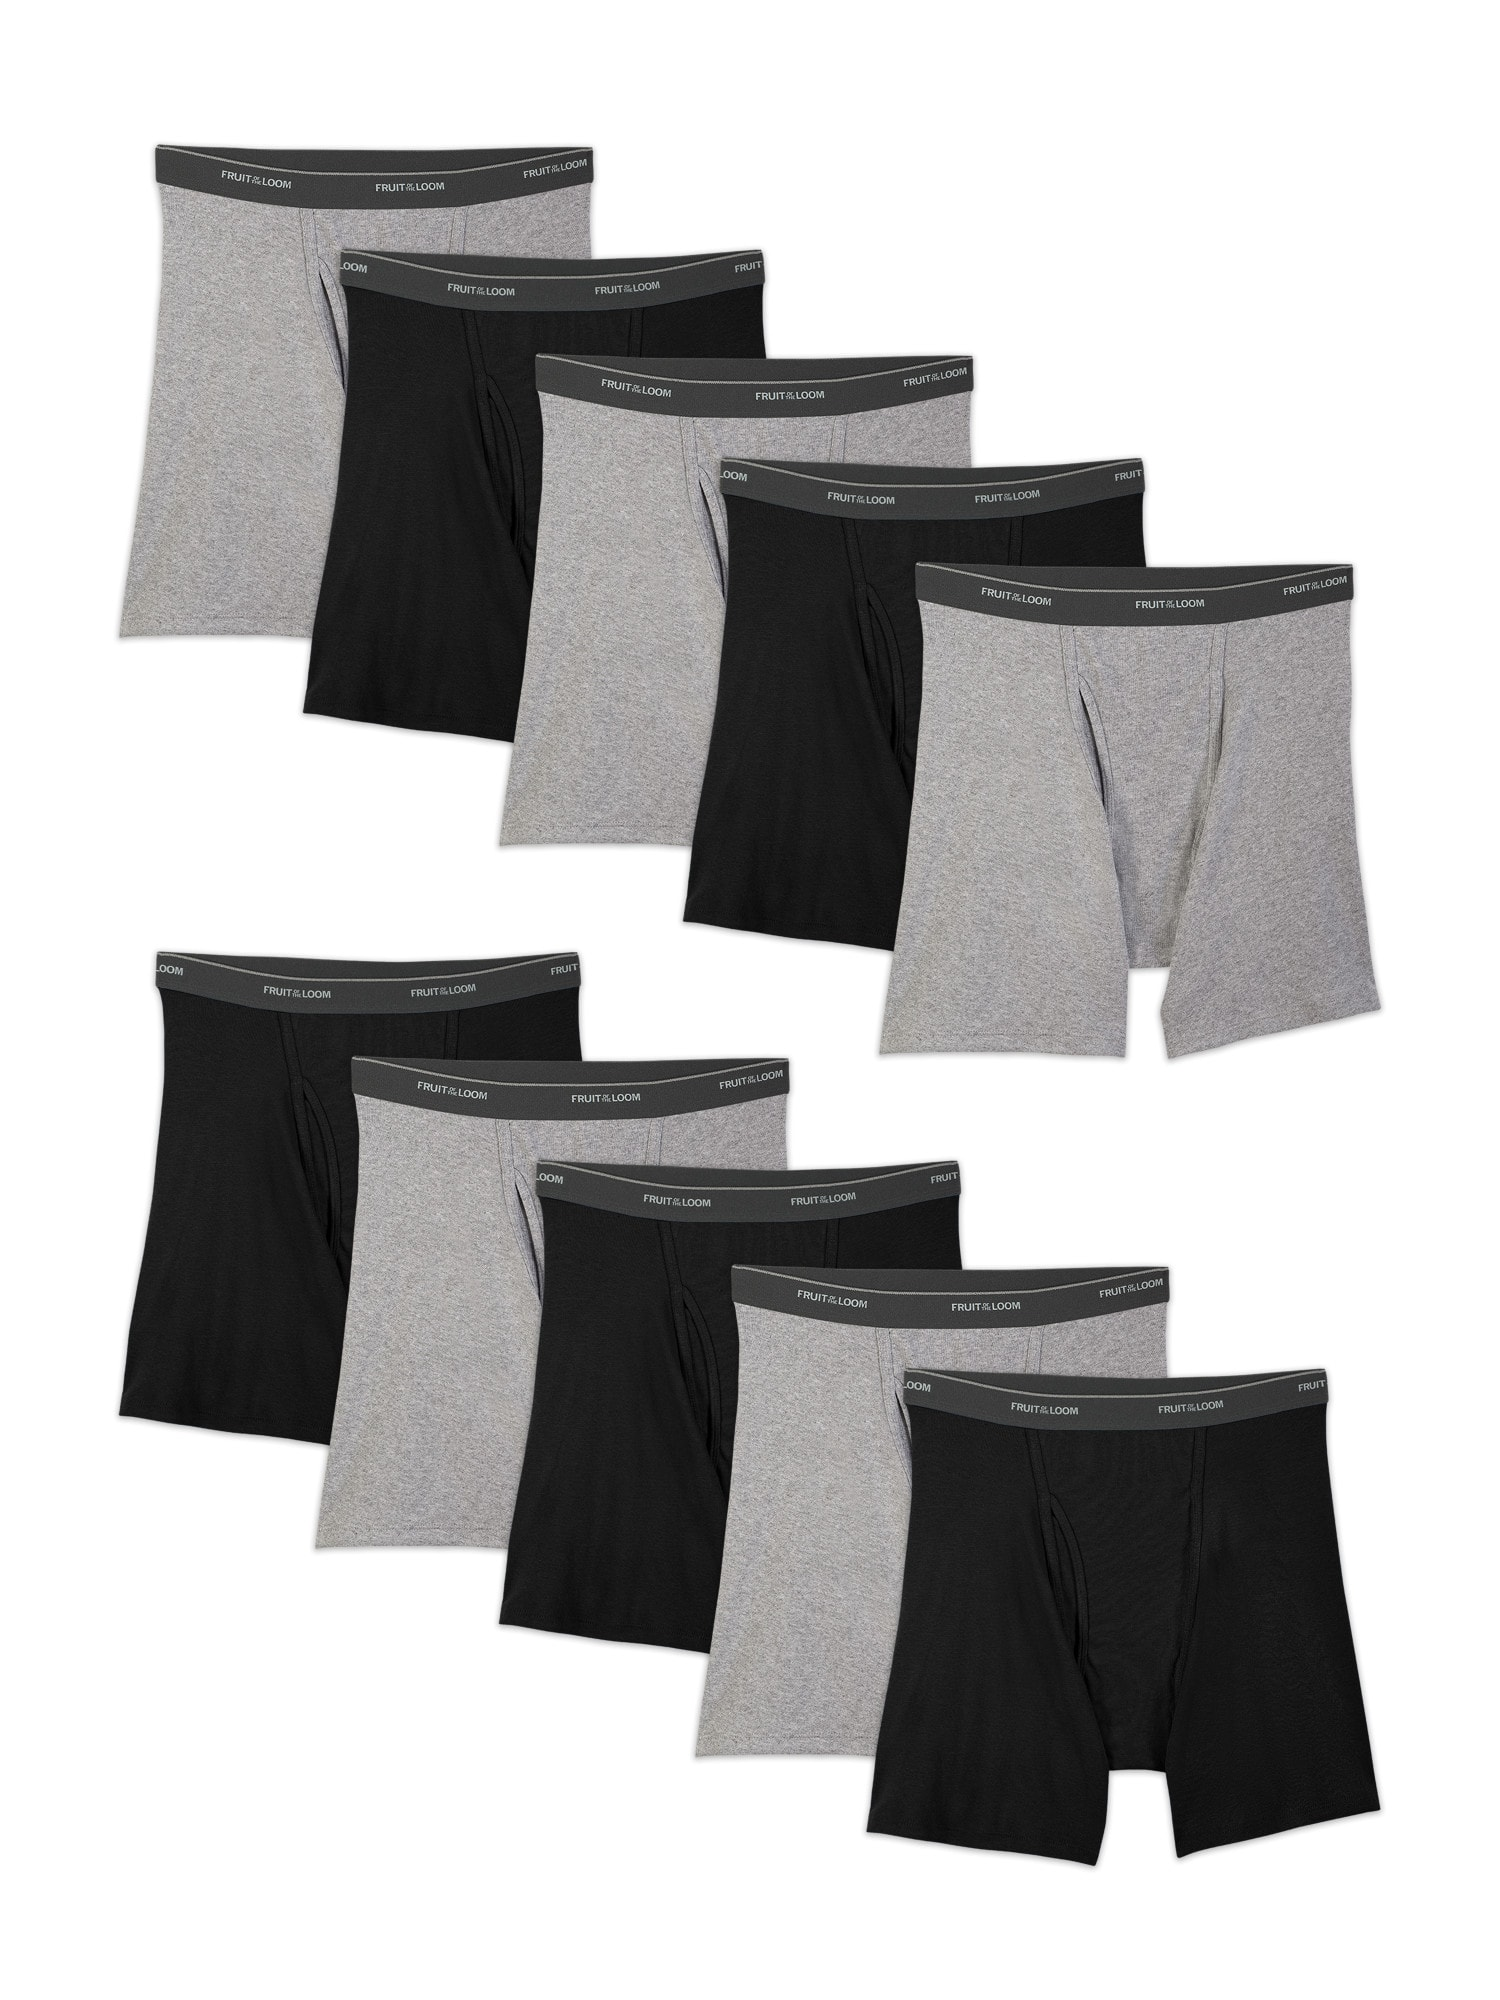 eefd4079 10-Pack Fruit of the Loom Men's Boxer Briefs (Black/Gray ...